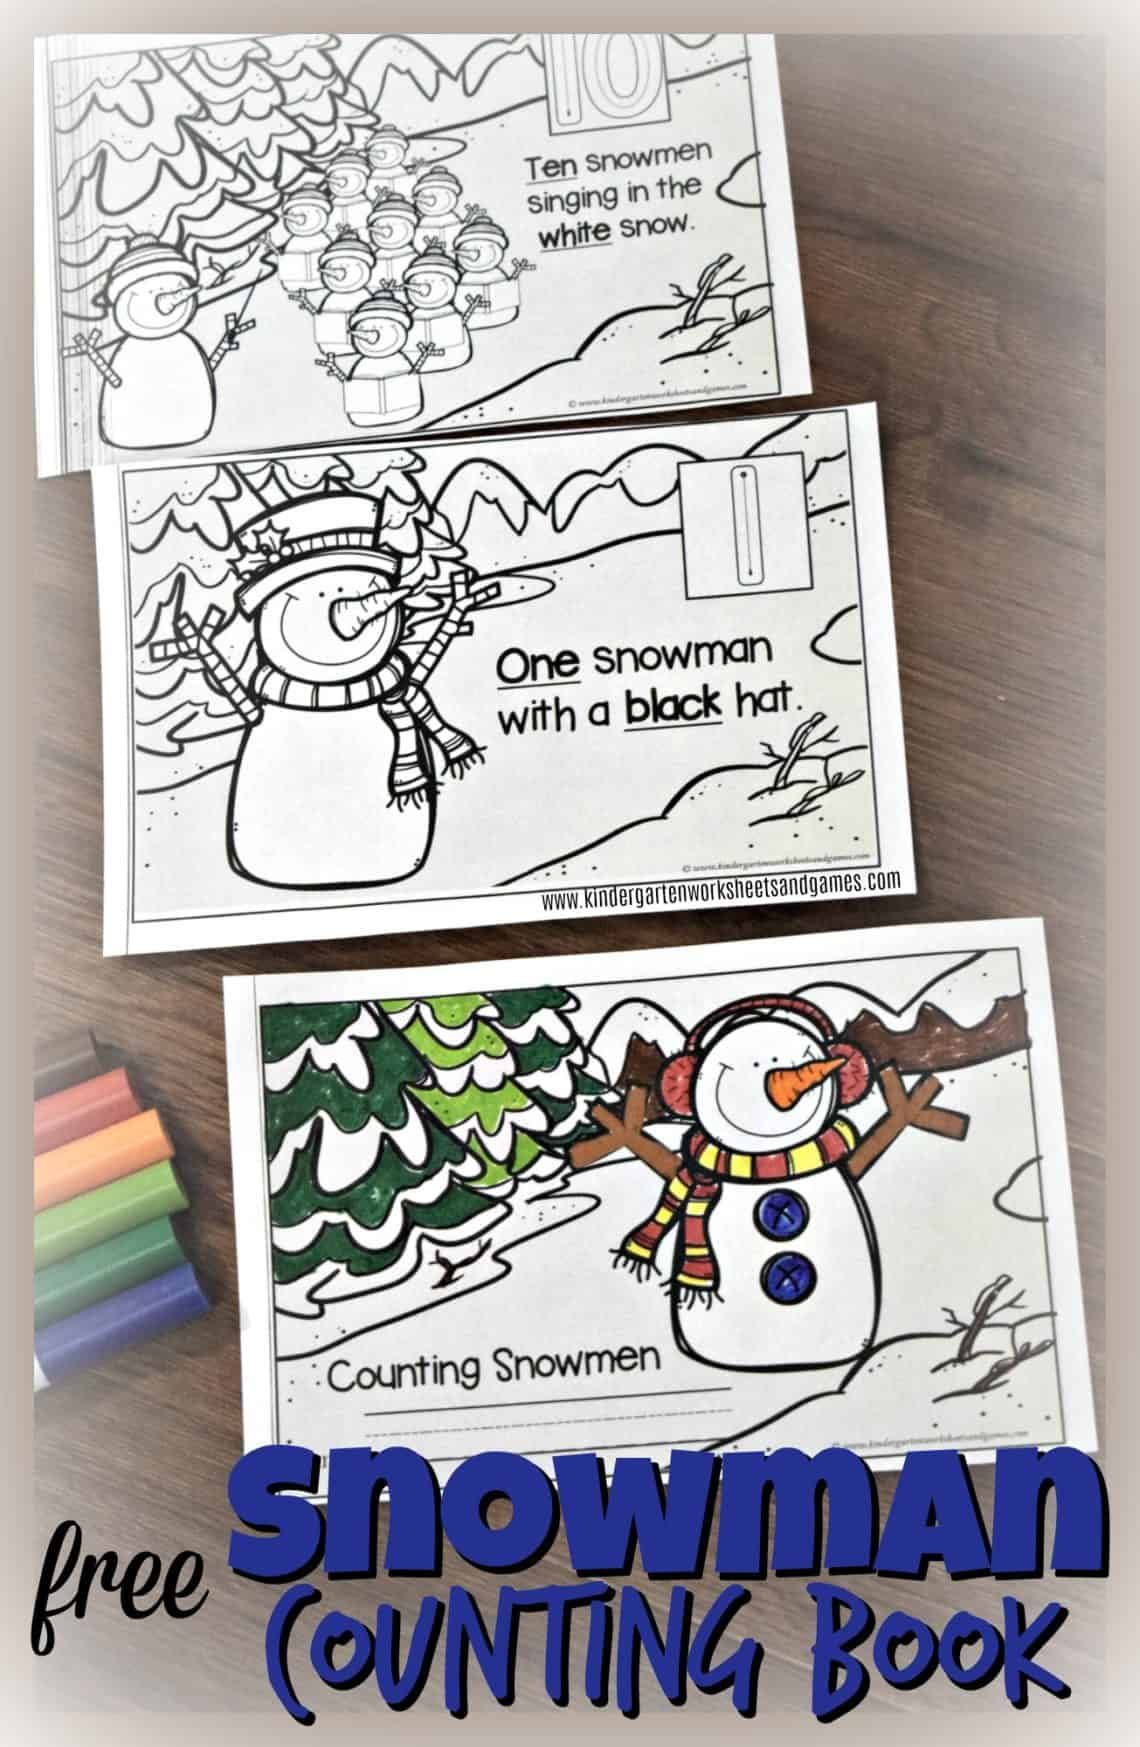 Free Snowman Counting Book